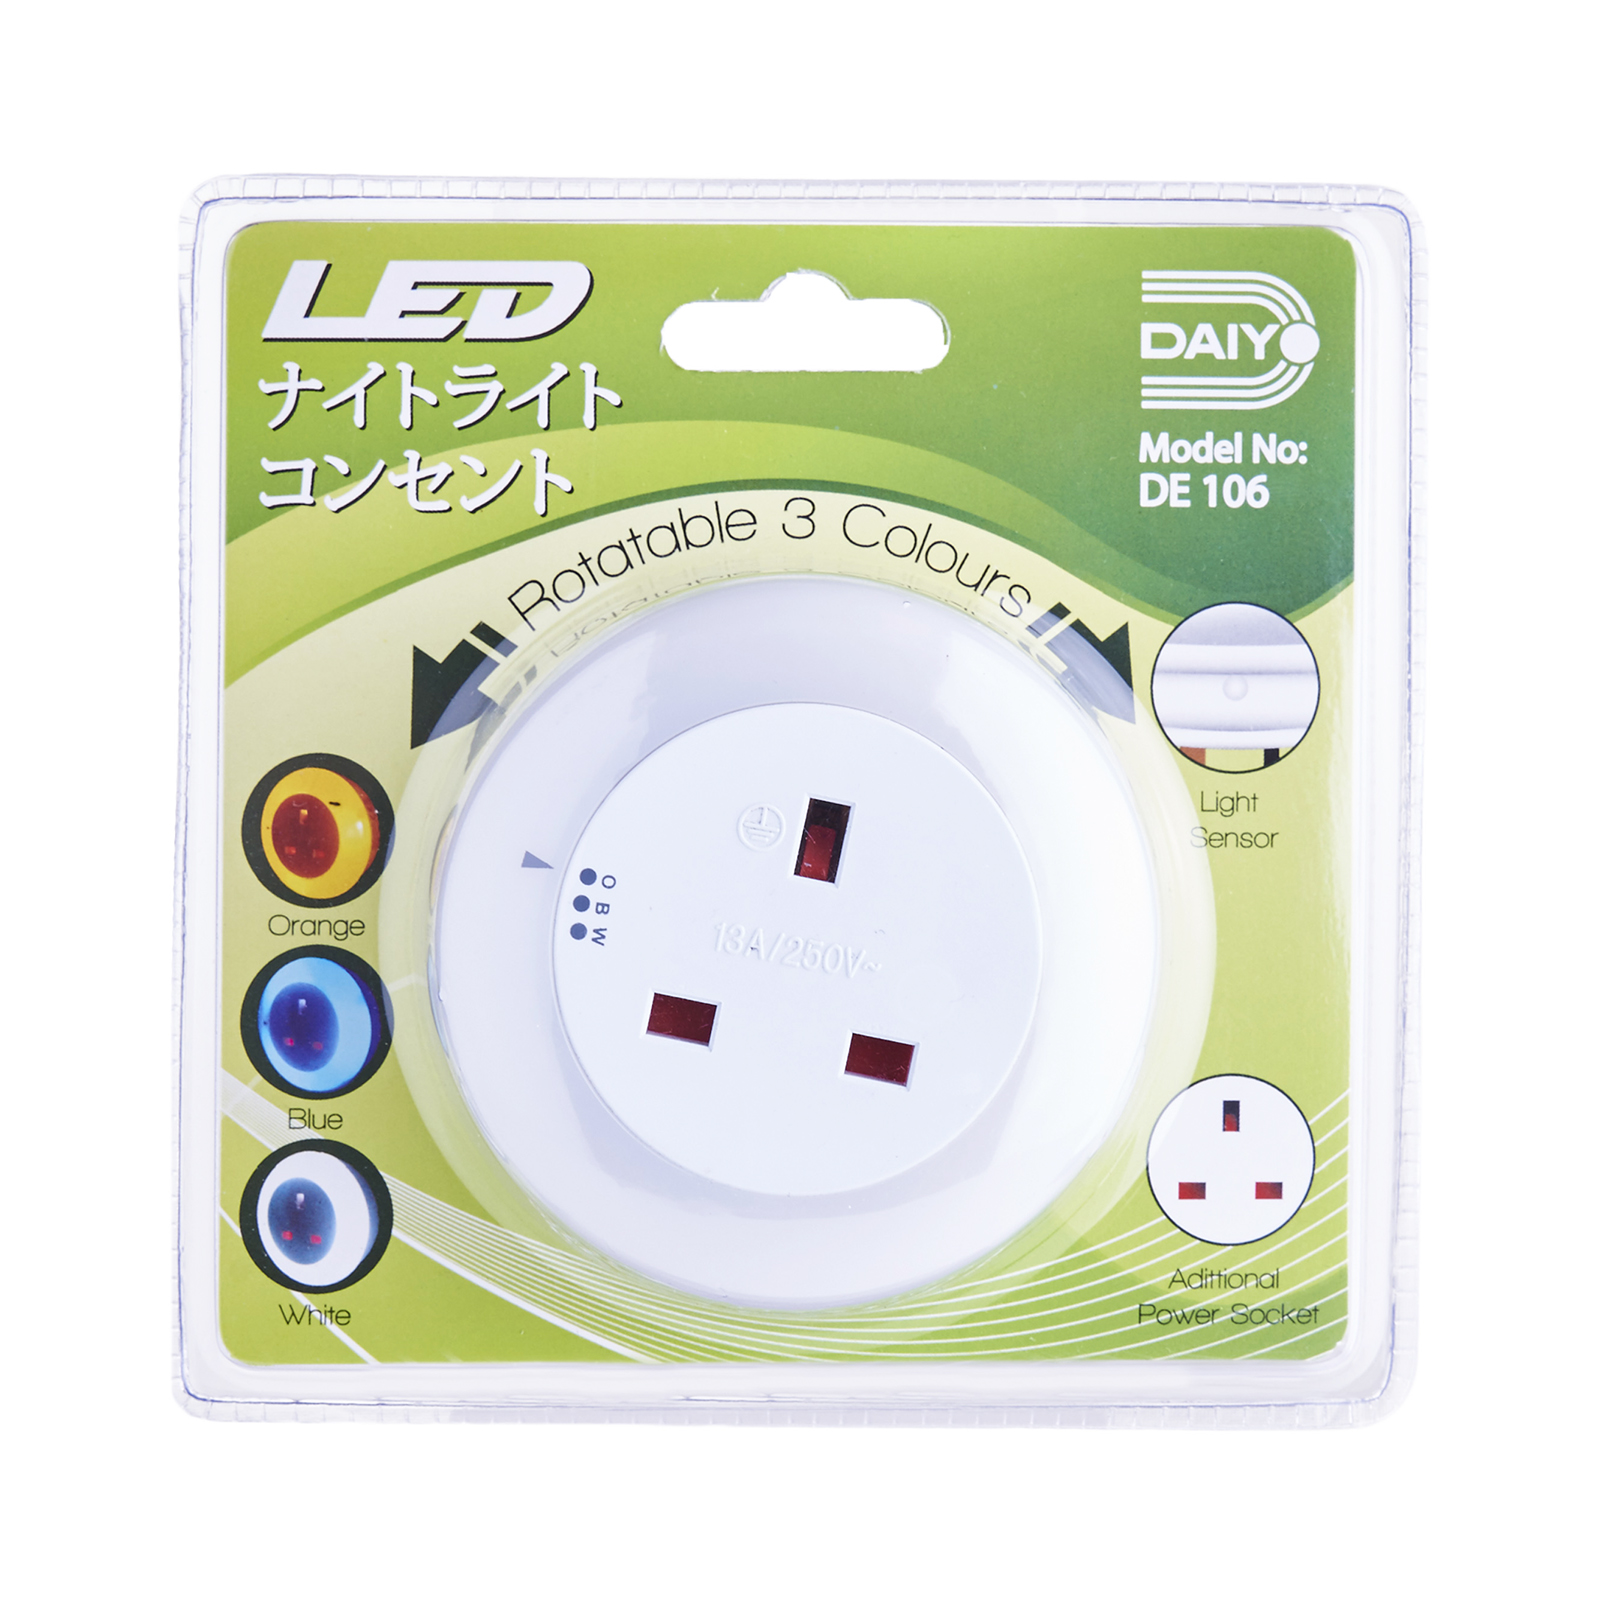 DE 106 UK Rotattable 3 colour LED Night Light with Additional UK Power Socket